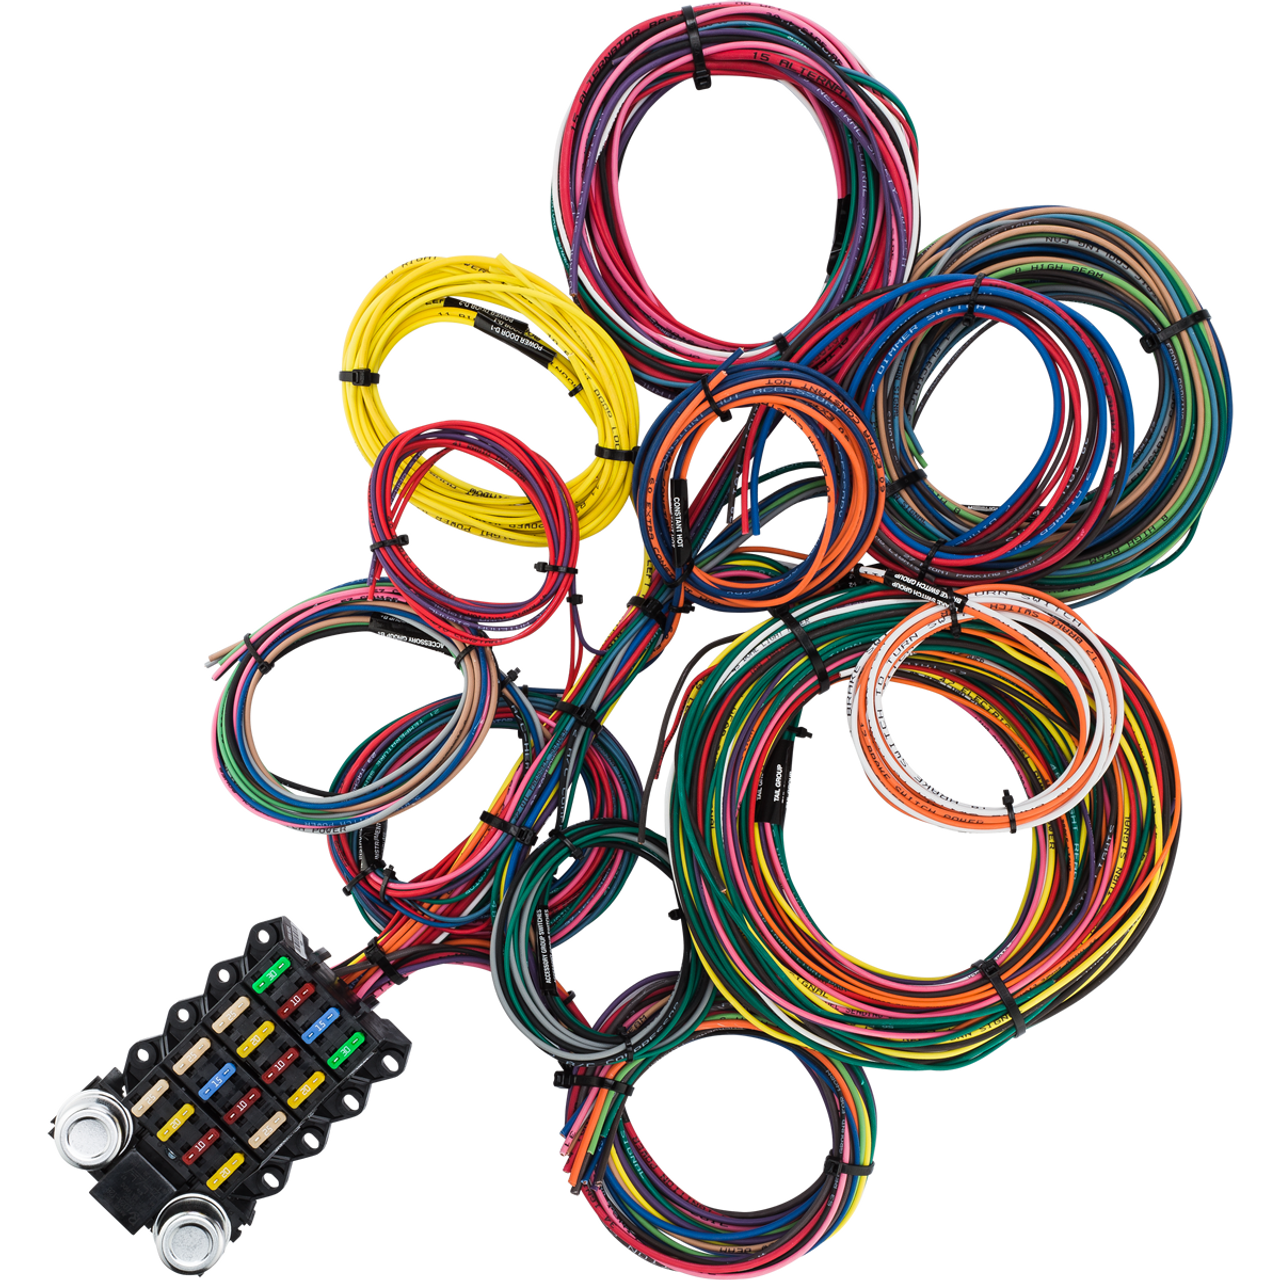 Awesome 20 Circuit Wiring Harness Wiring Diagram Wiring Digital Resources Indicompassionincorg